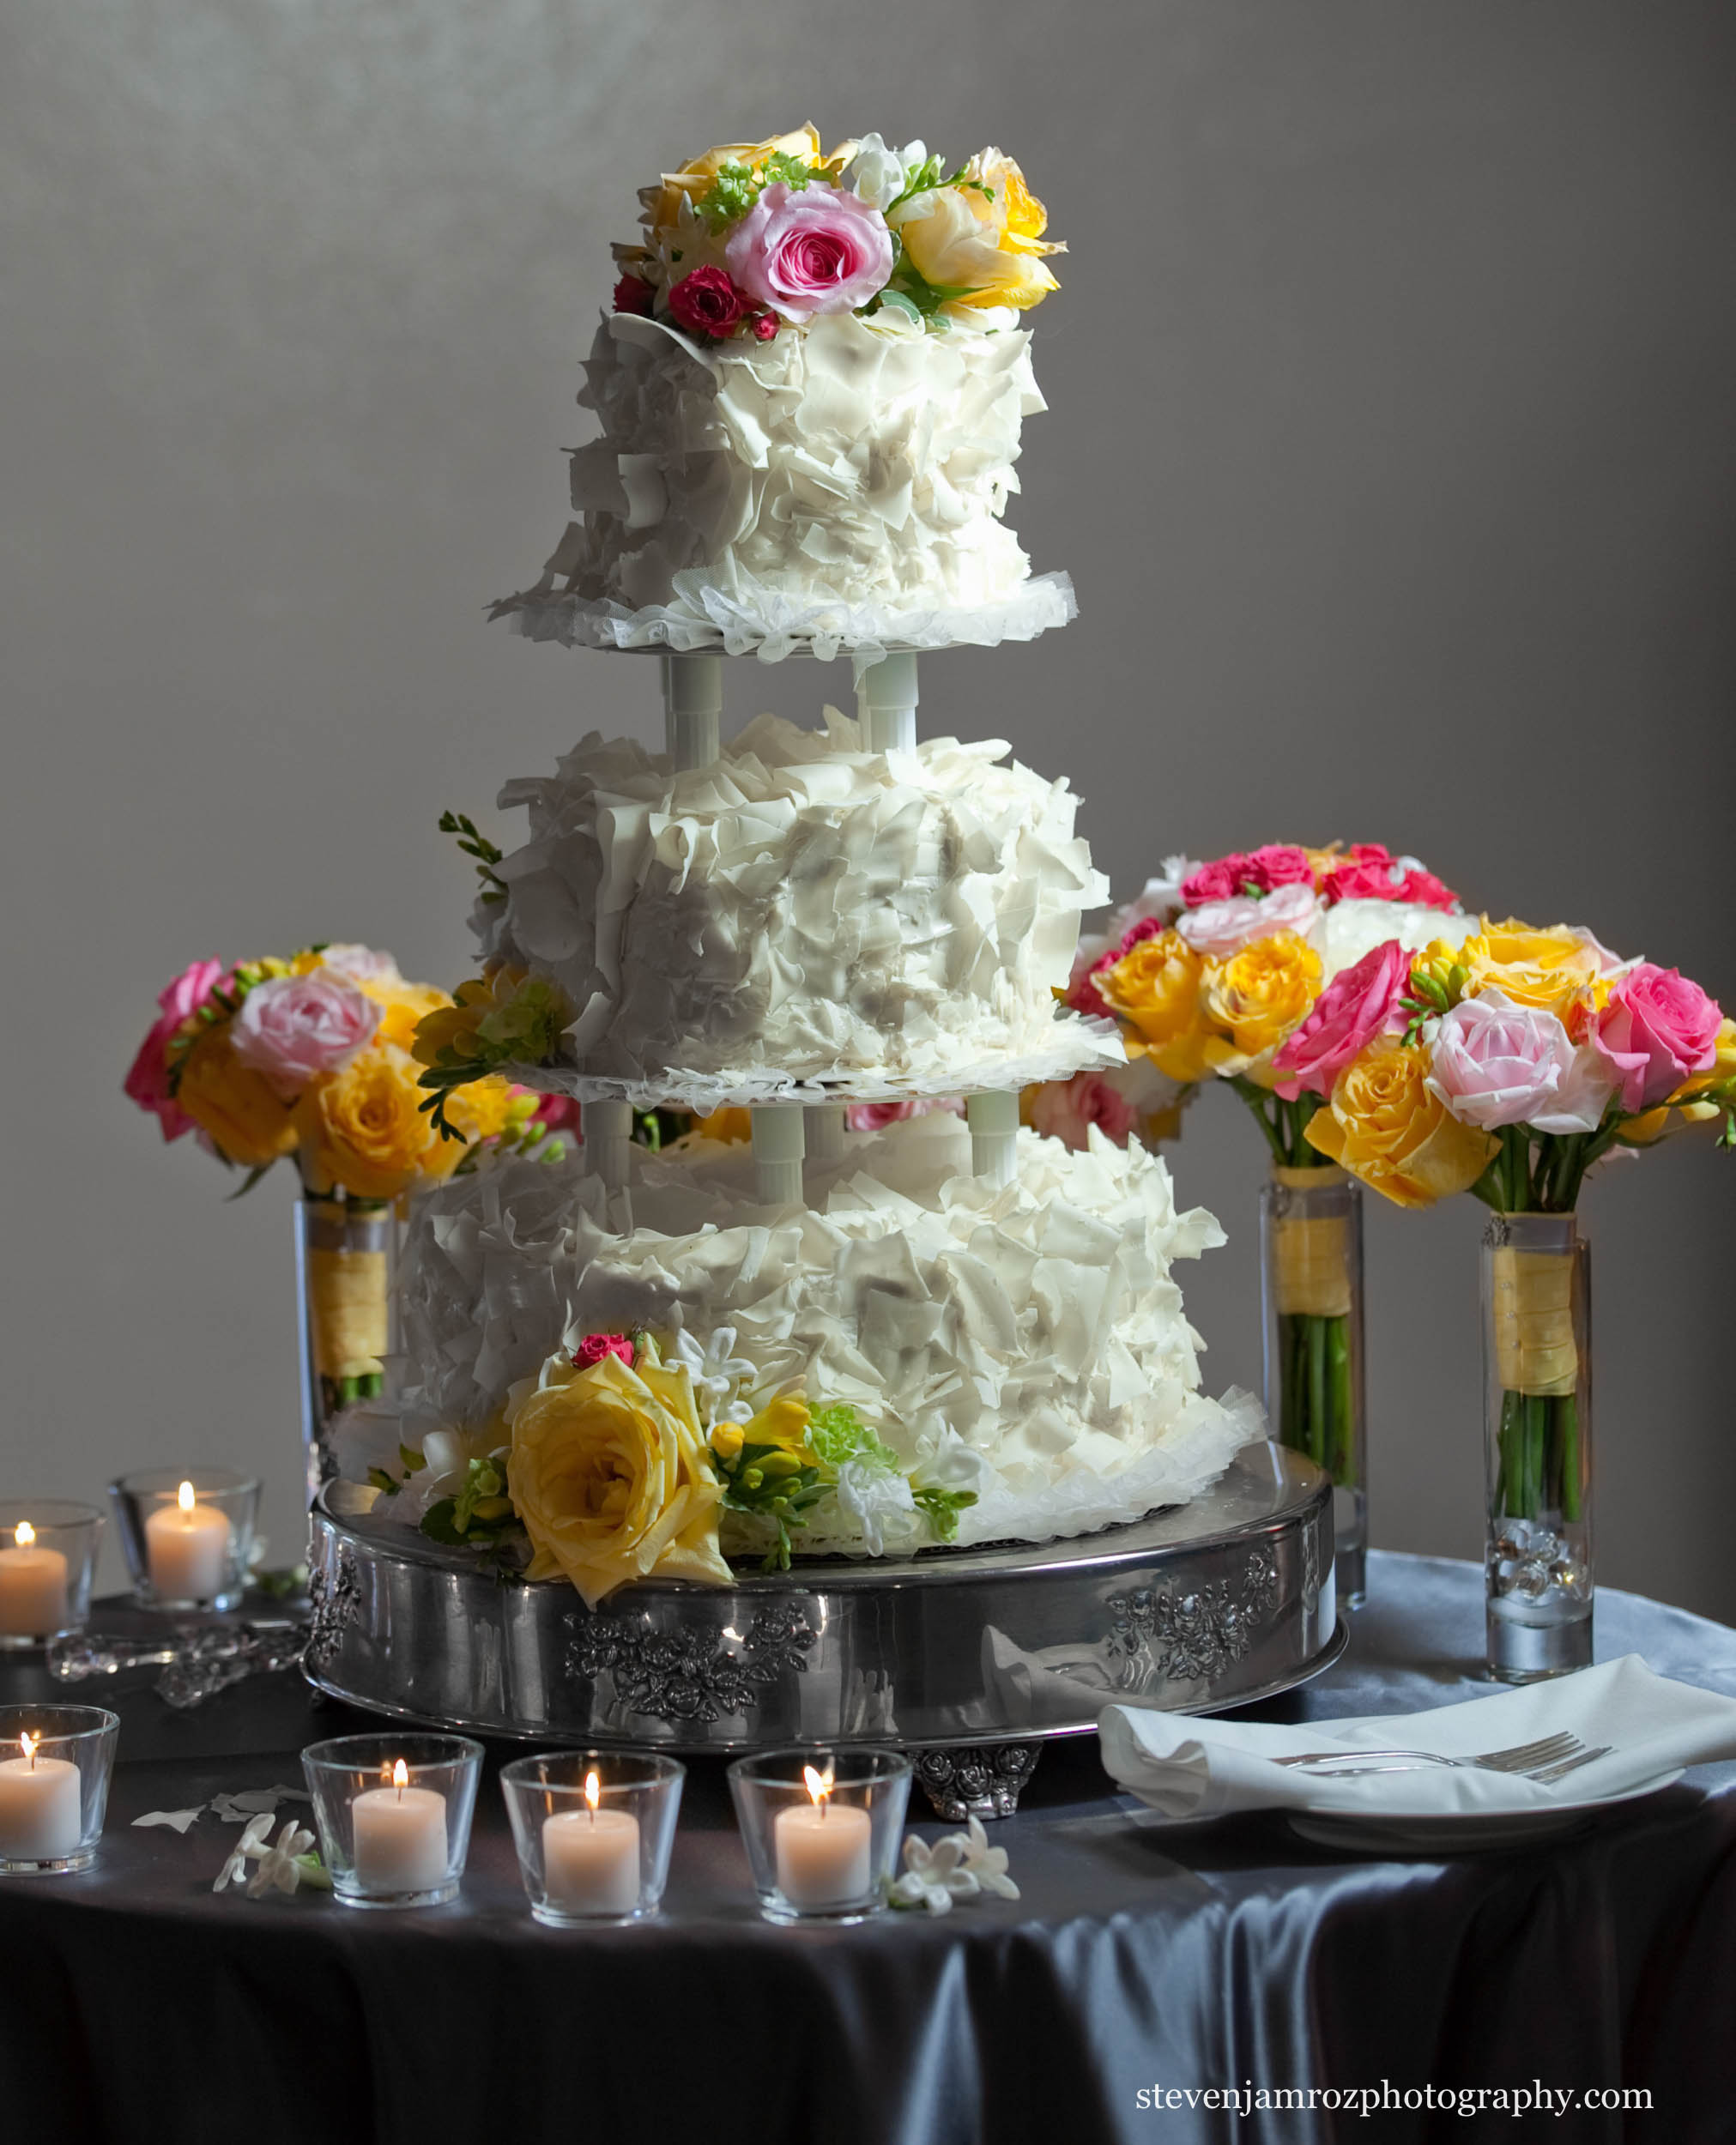 flowers-and-wedding-cake-raleigh-nc-steven-jamroz-photography-0403.jpg